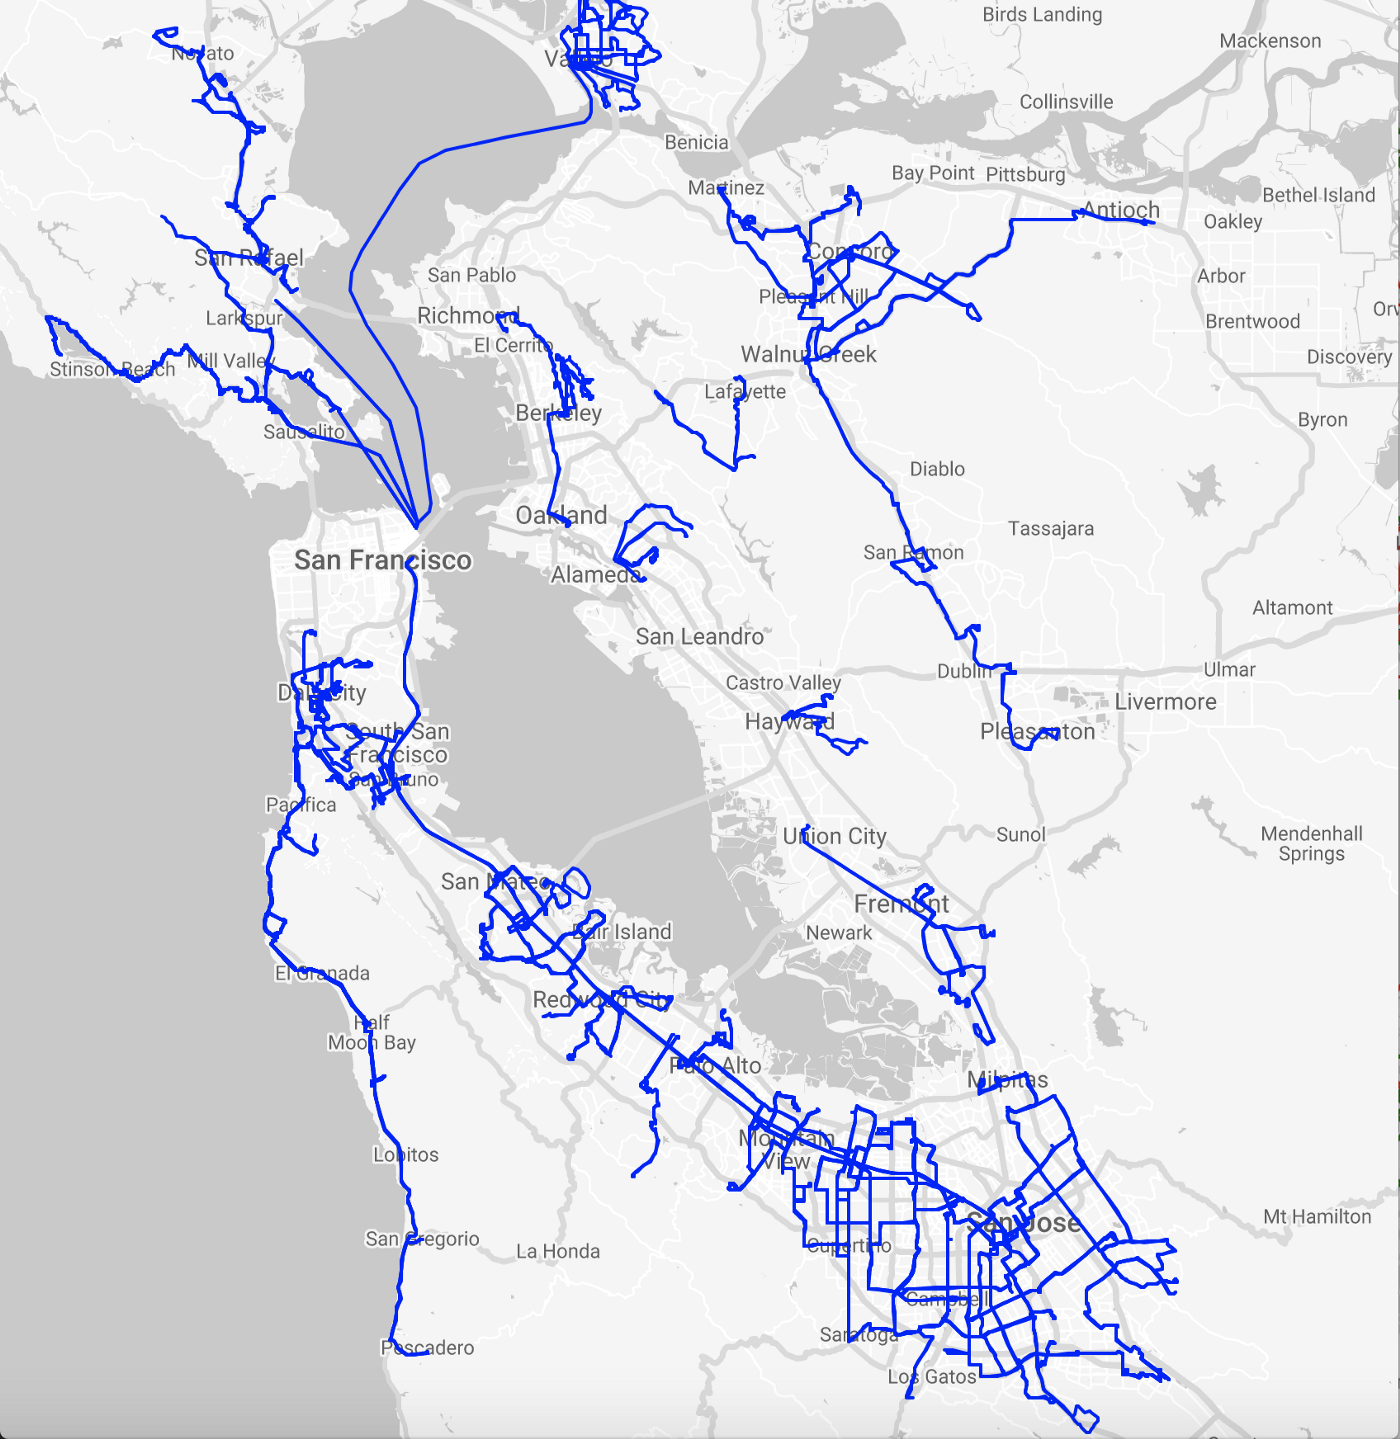 Generating pretty maps to visualize current and proposed transit